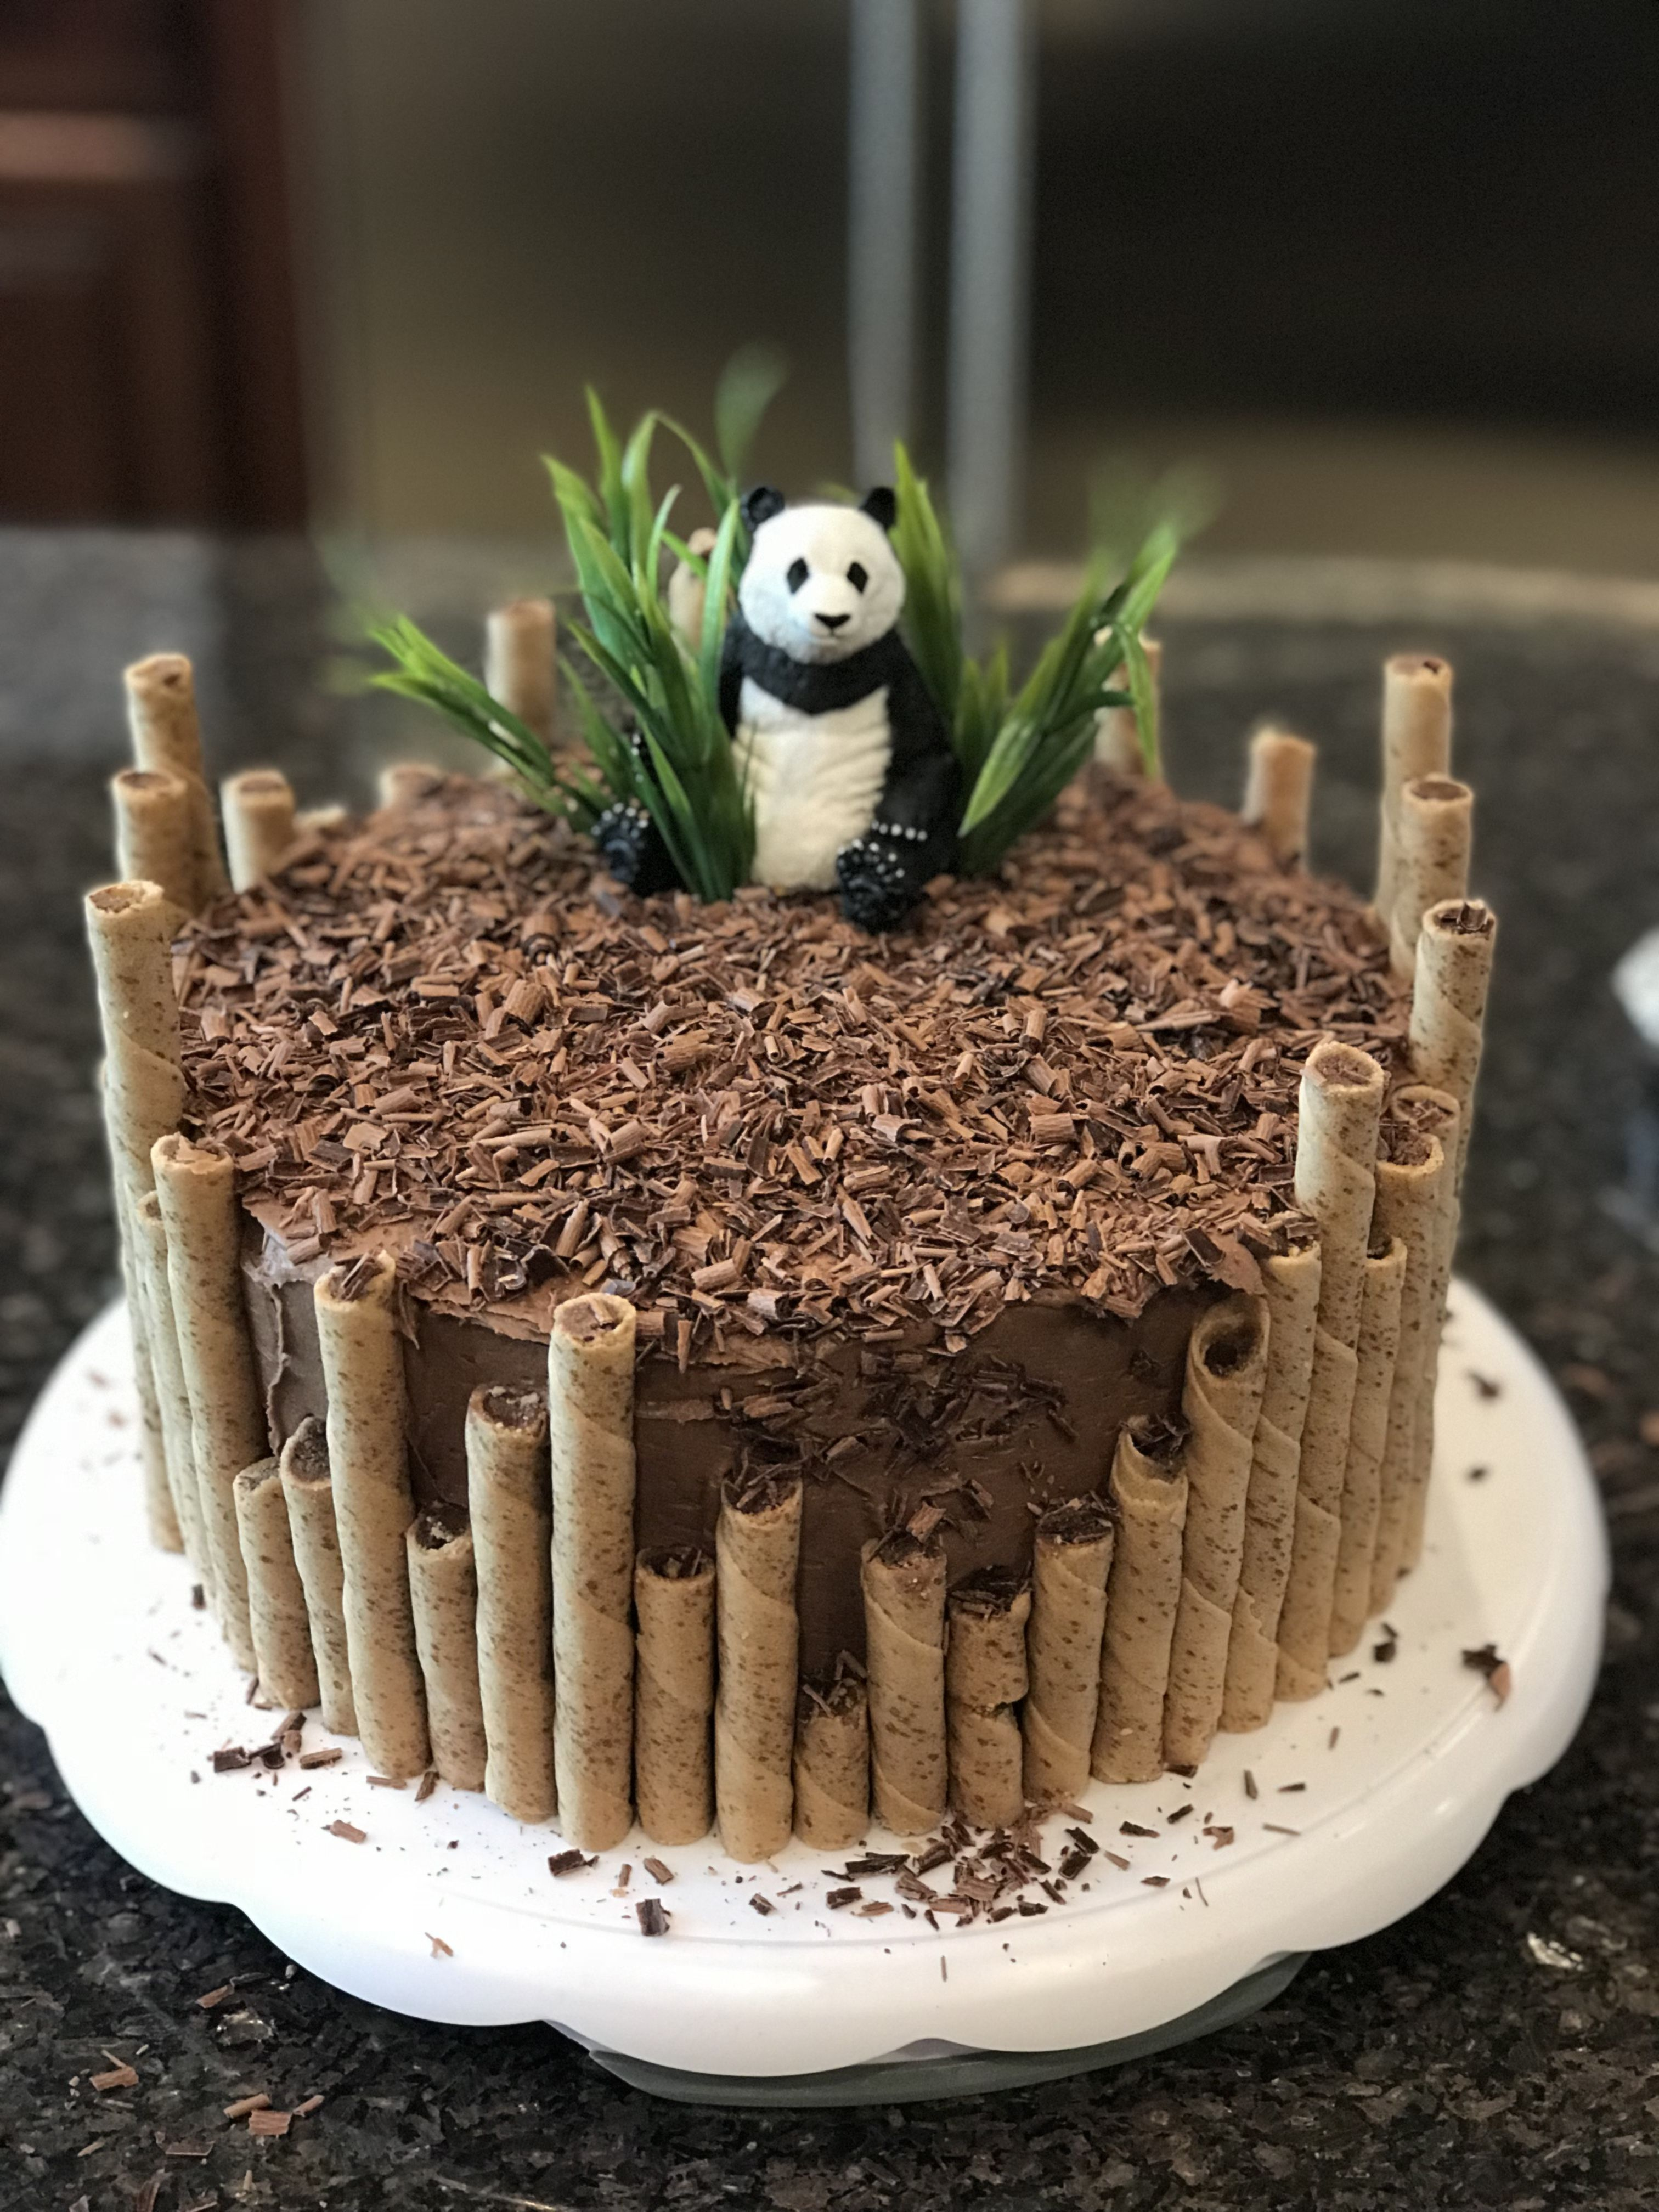 Panda Birthday Cake By Erin Farley With Images New Cake Panda